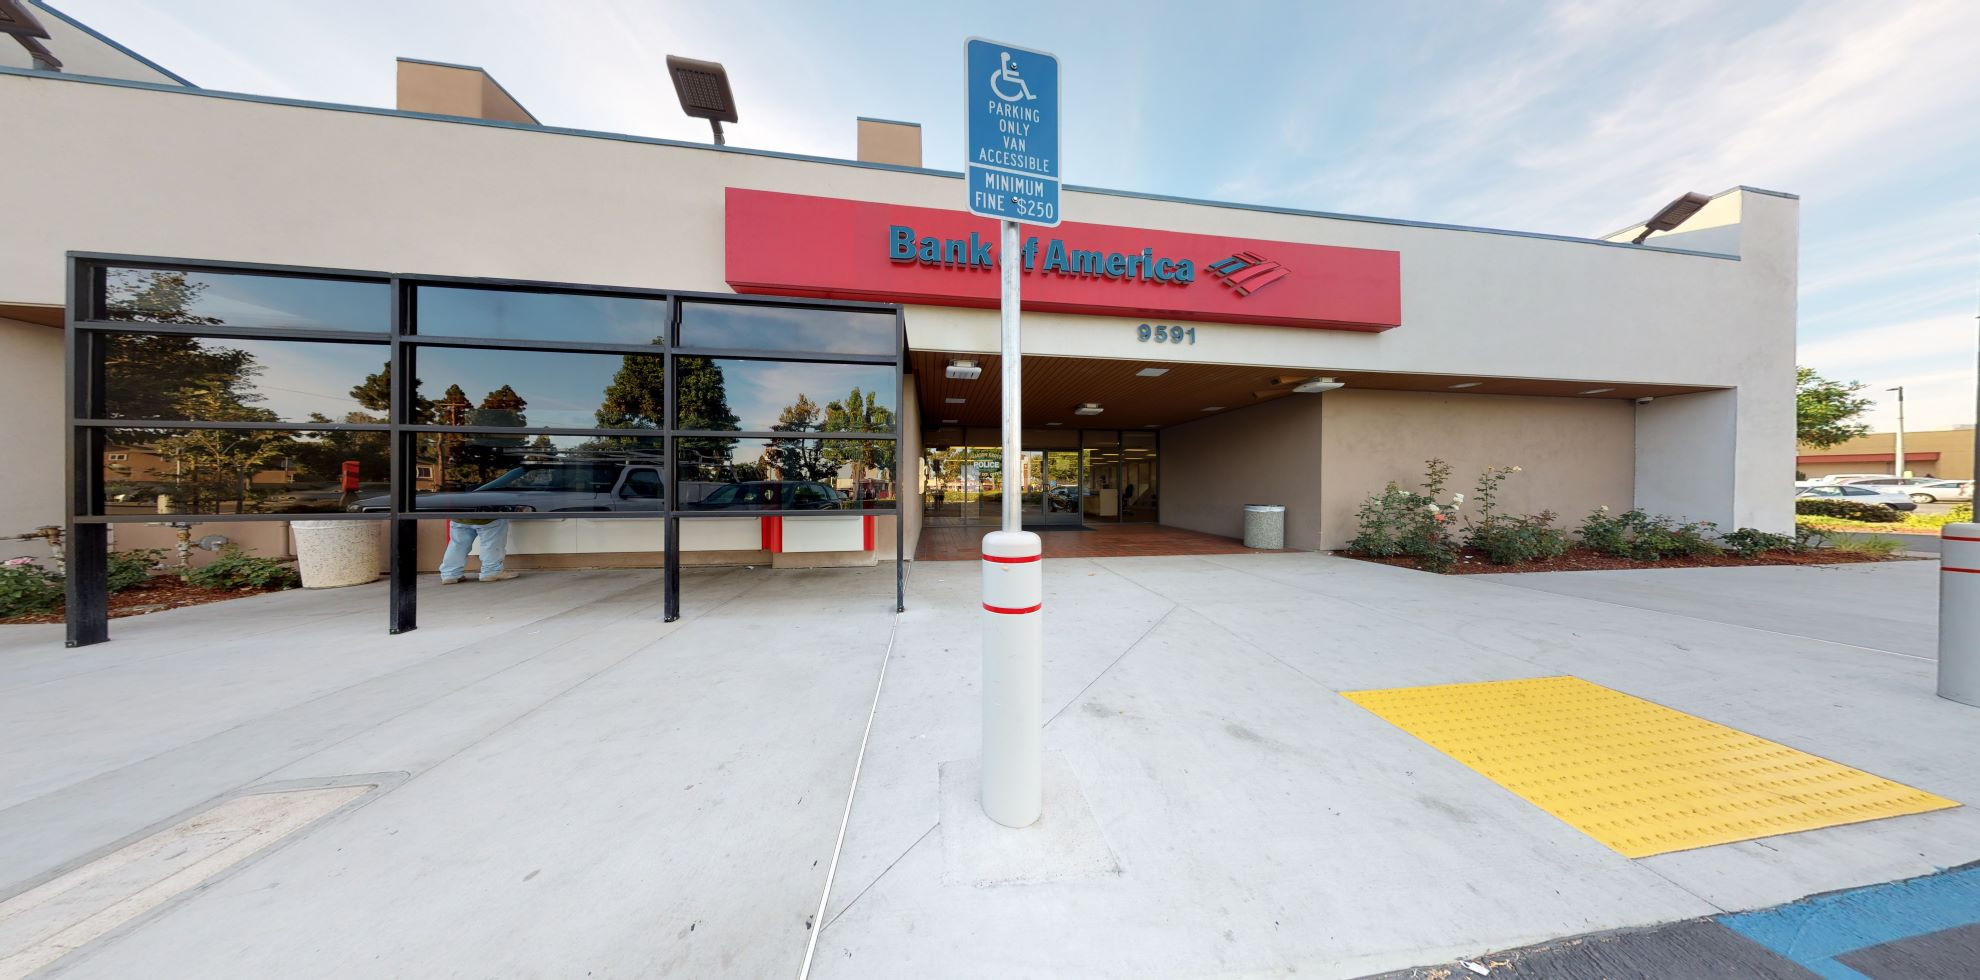 Bank of America financial center with walk-up ATM   9591 Chapman Ave, Garden Grove, CA 92841